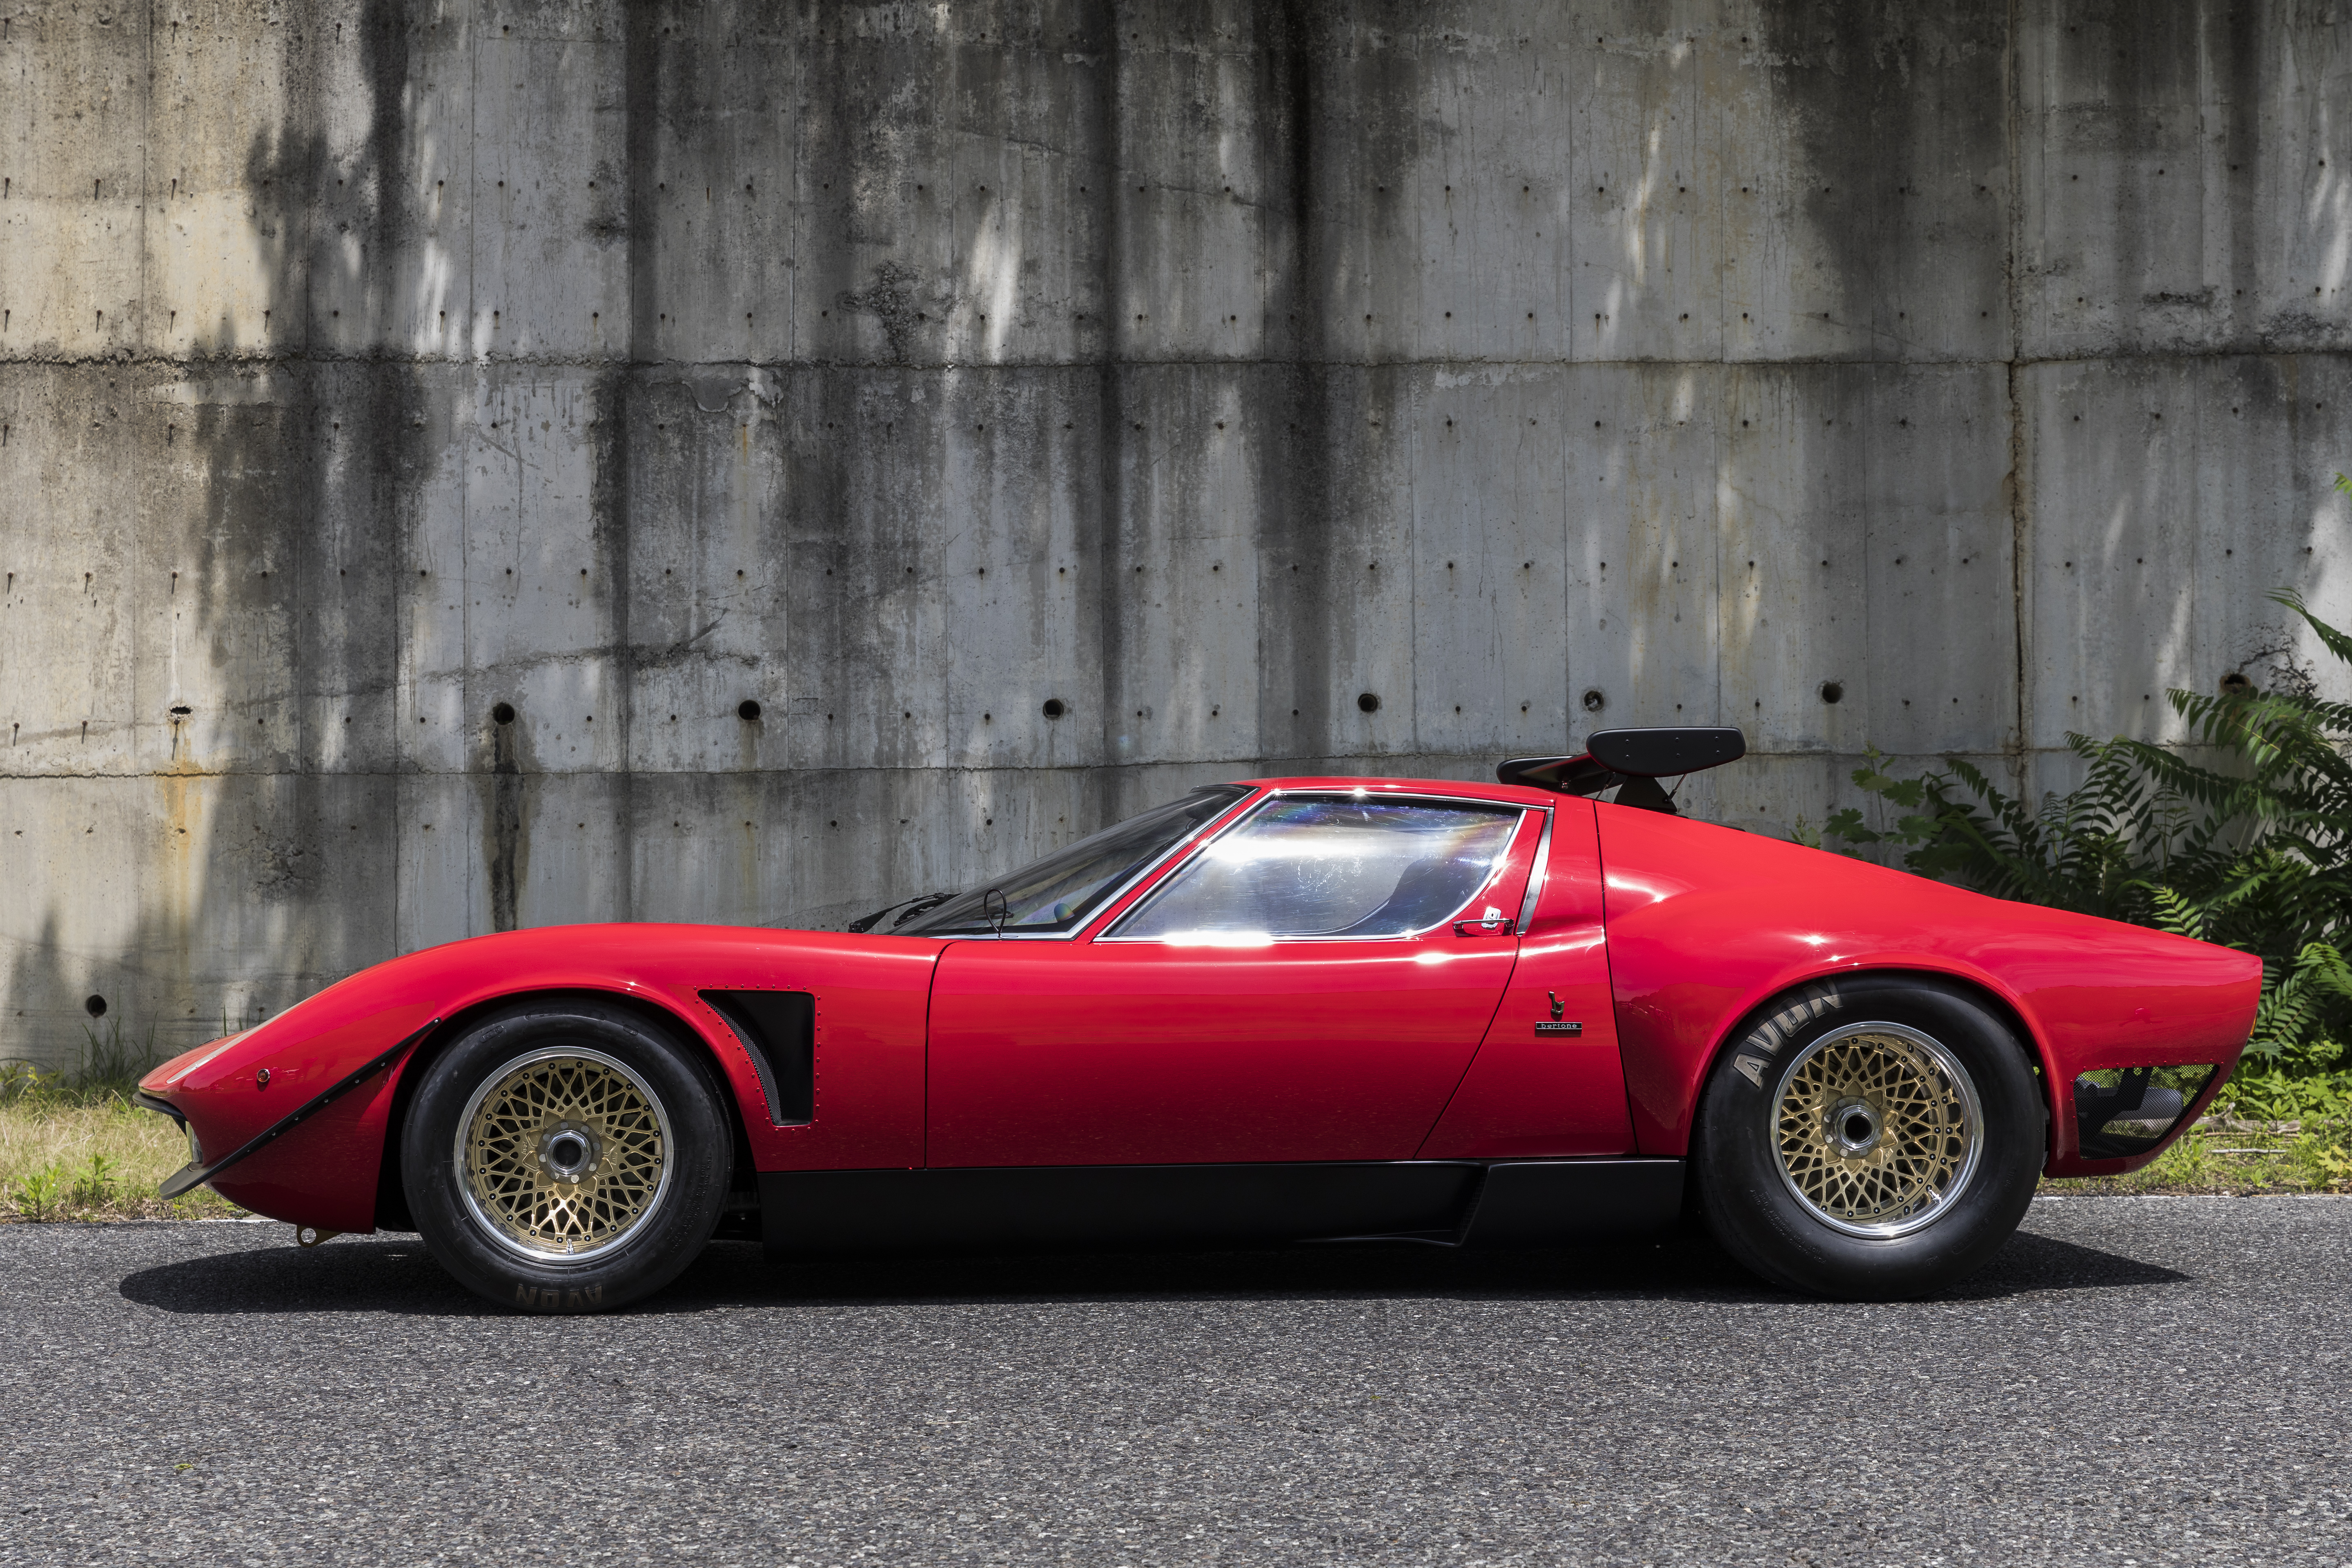 One of Lamborghini's dedicated subdivisions has finished the restoration of the world's only Miura SVR vehicle issued in 1974